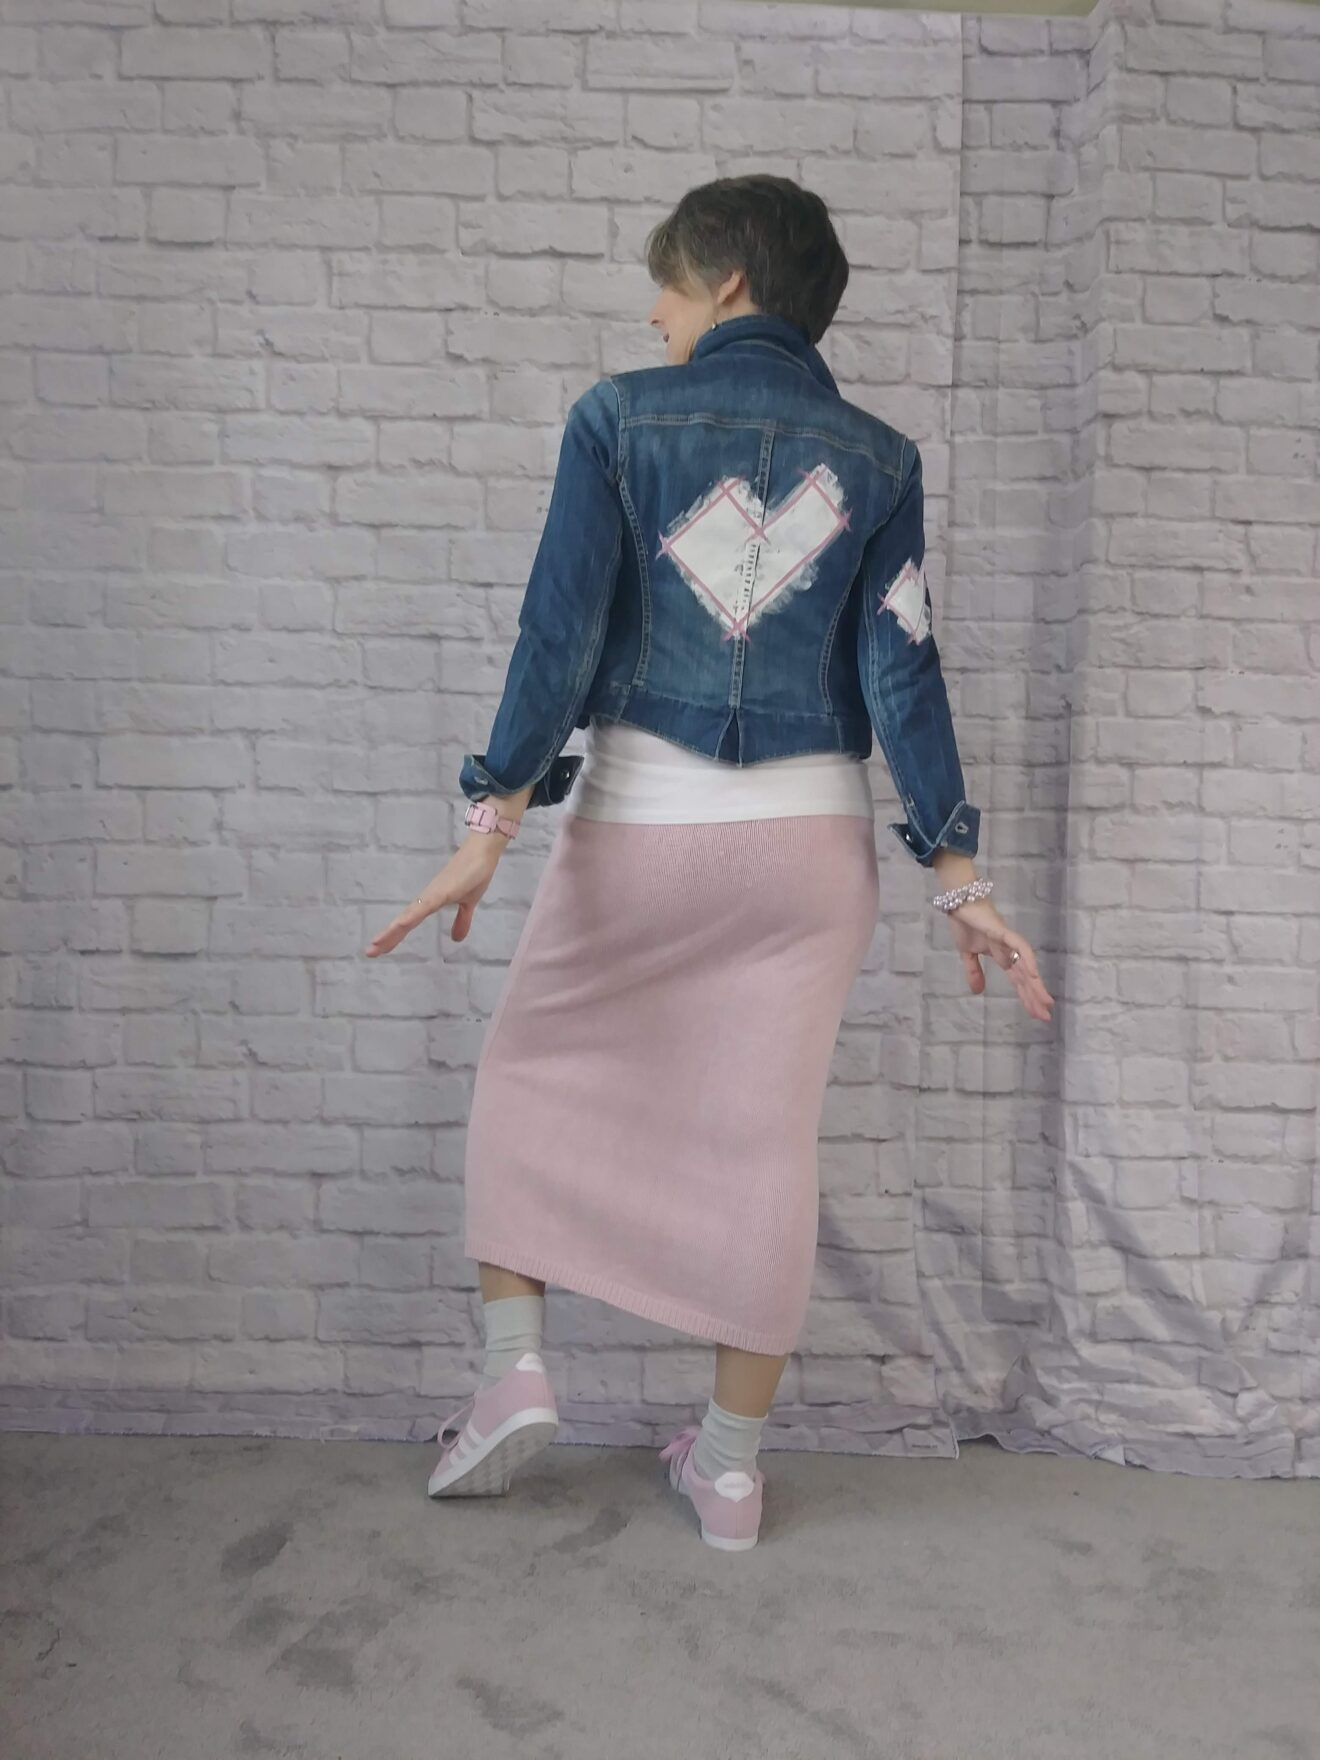 Style Story Interview Reckless Resale Designer Gwen Bielicki Cute Pink Outfit with Heart Painted DIY Denim Jacket Story Behind The Cloth e1560706709829